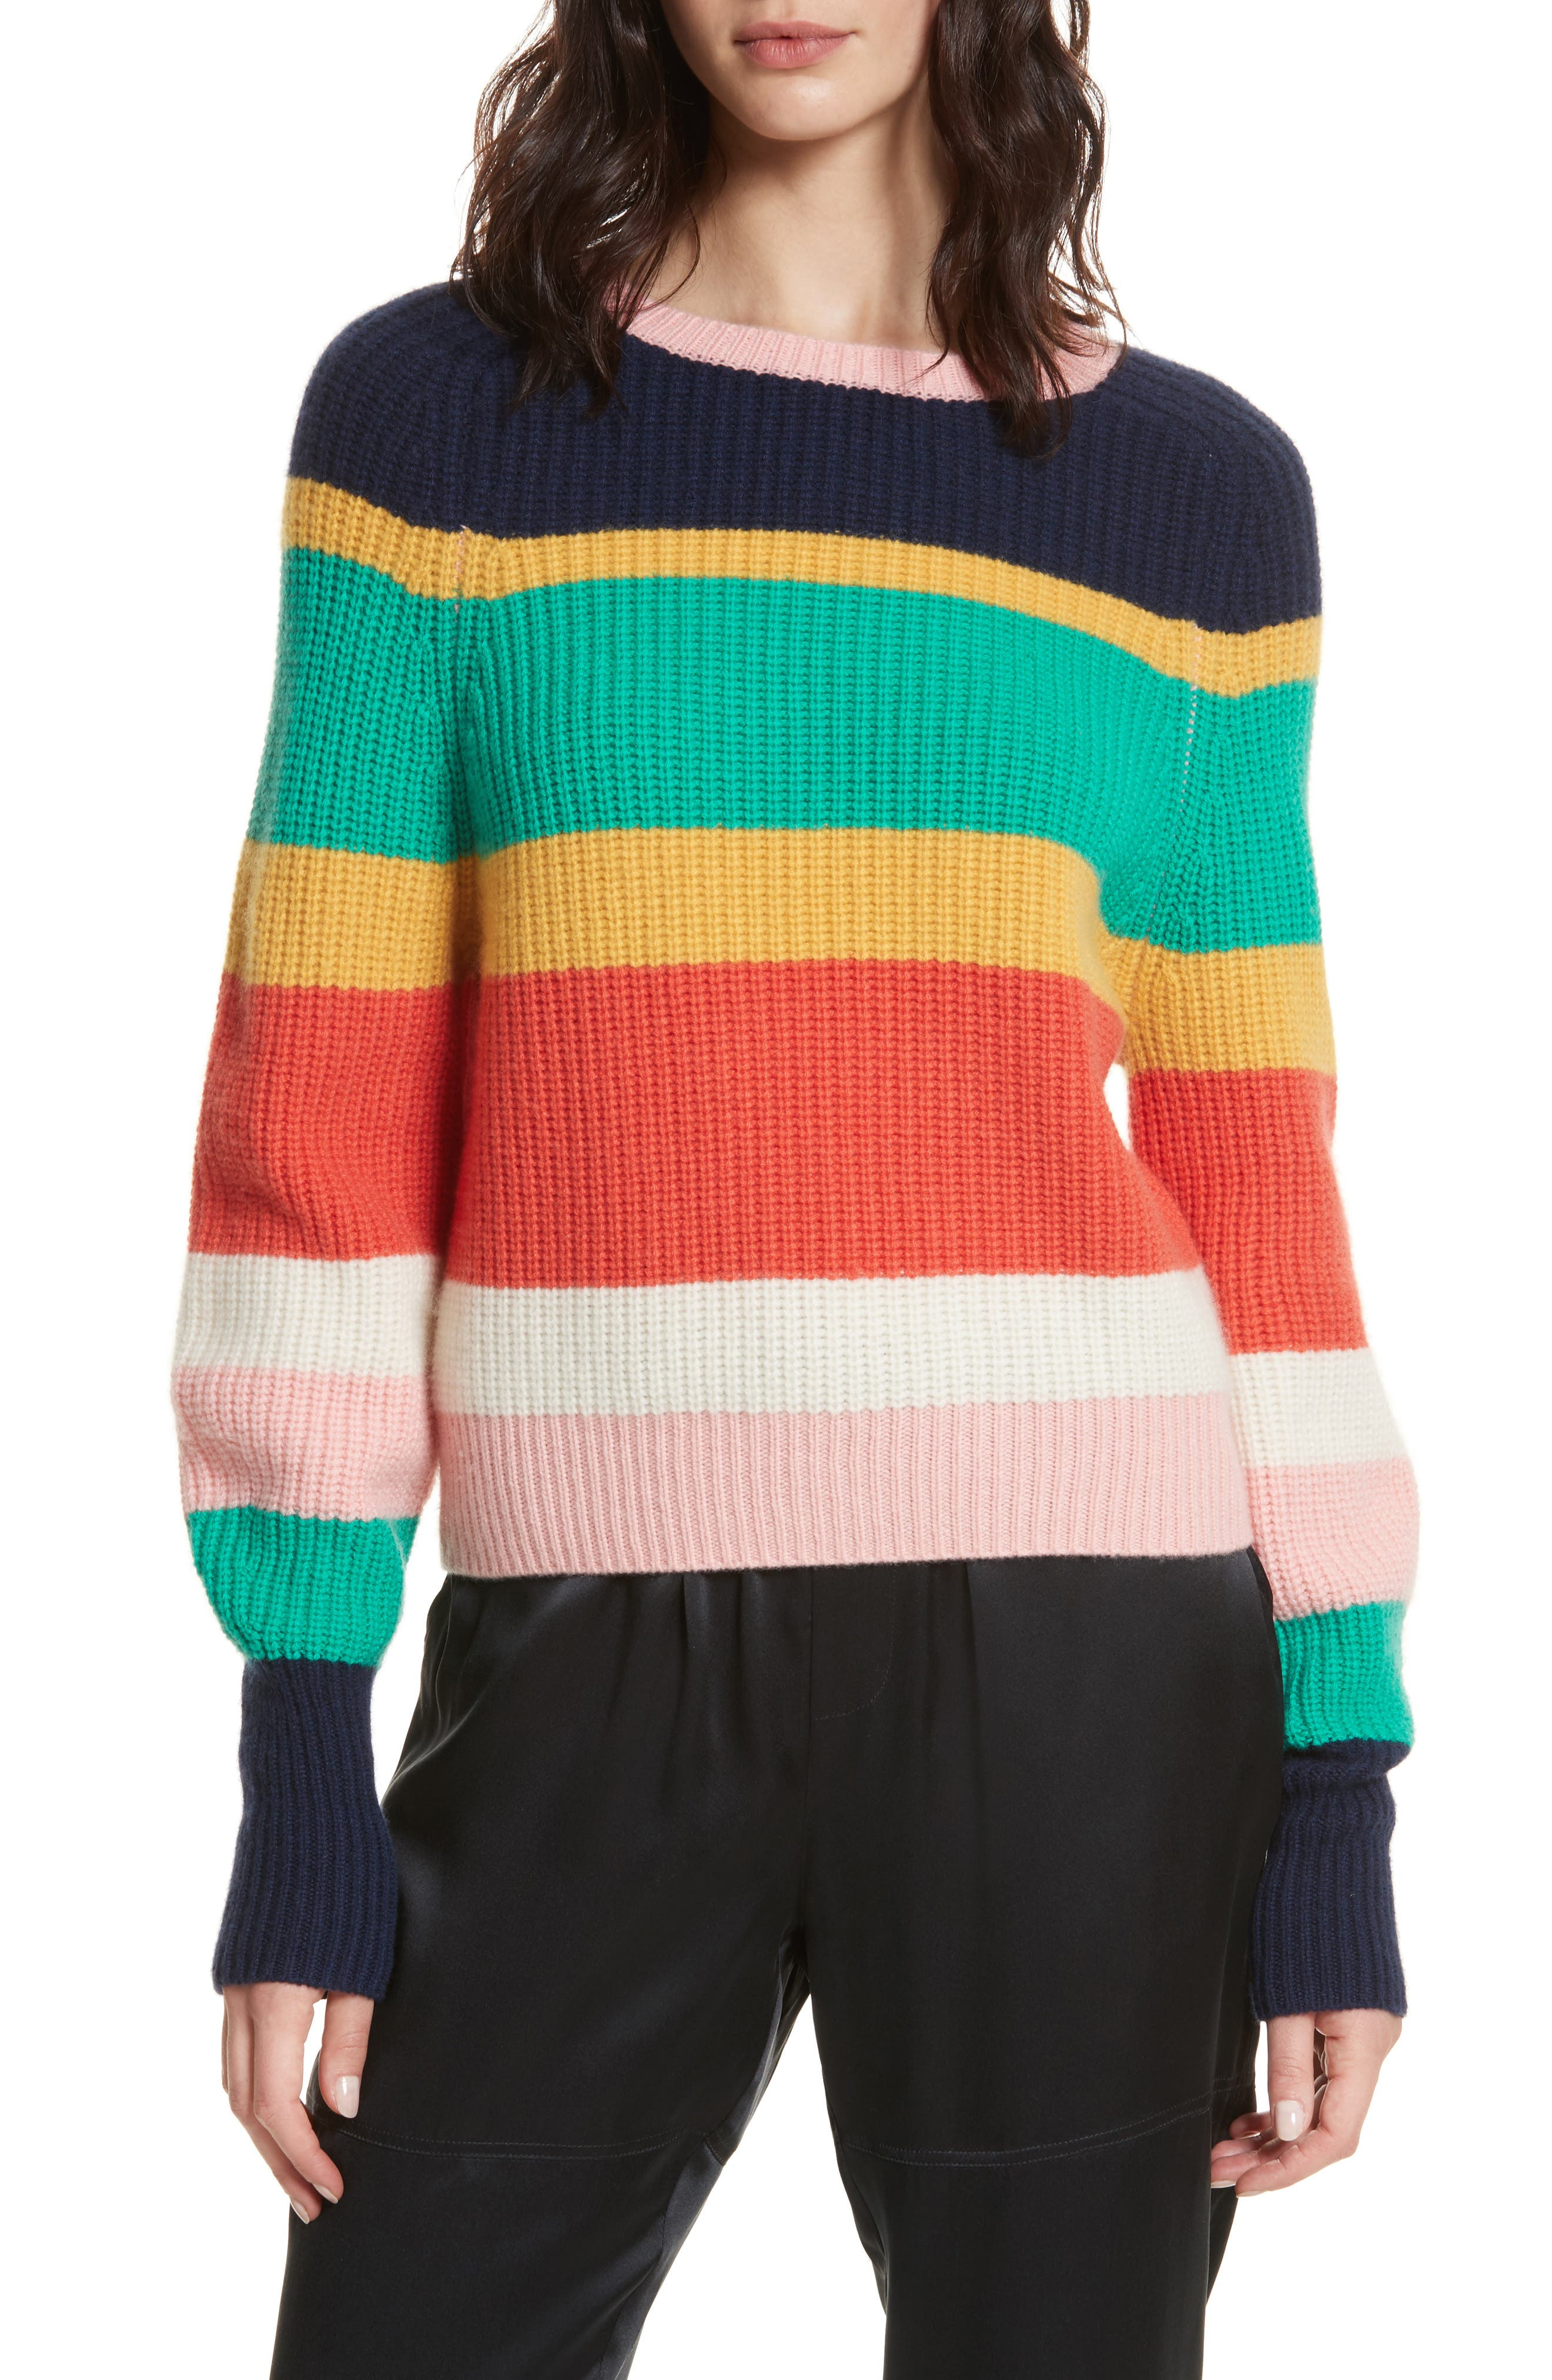 Haady Stripe Wool & Cashmere Sweater,                             Main thumbnail 1, color,                             475